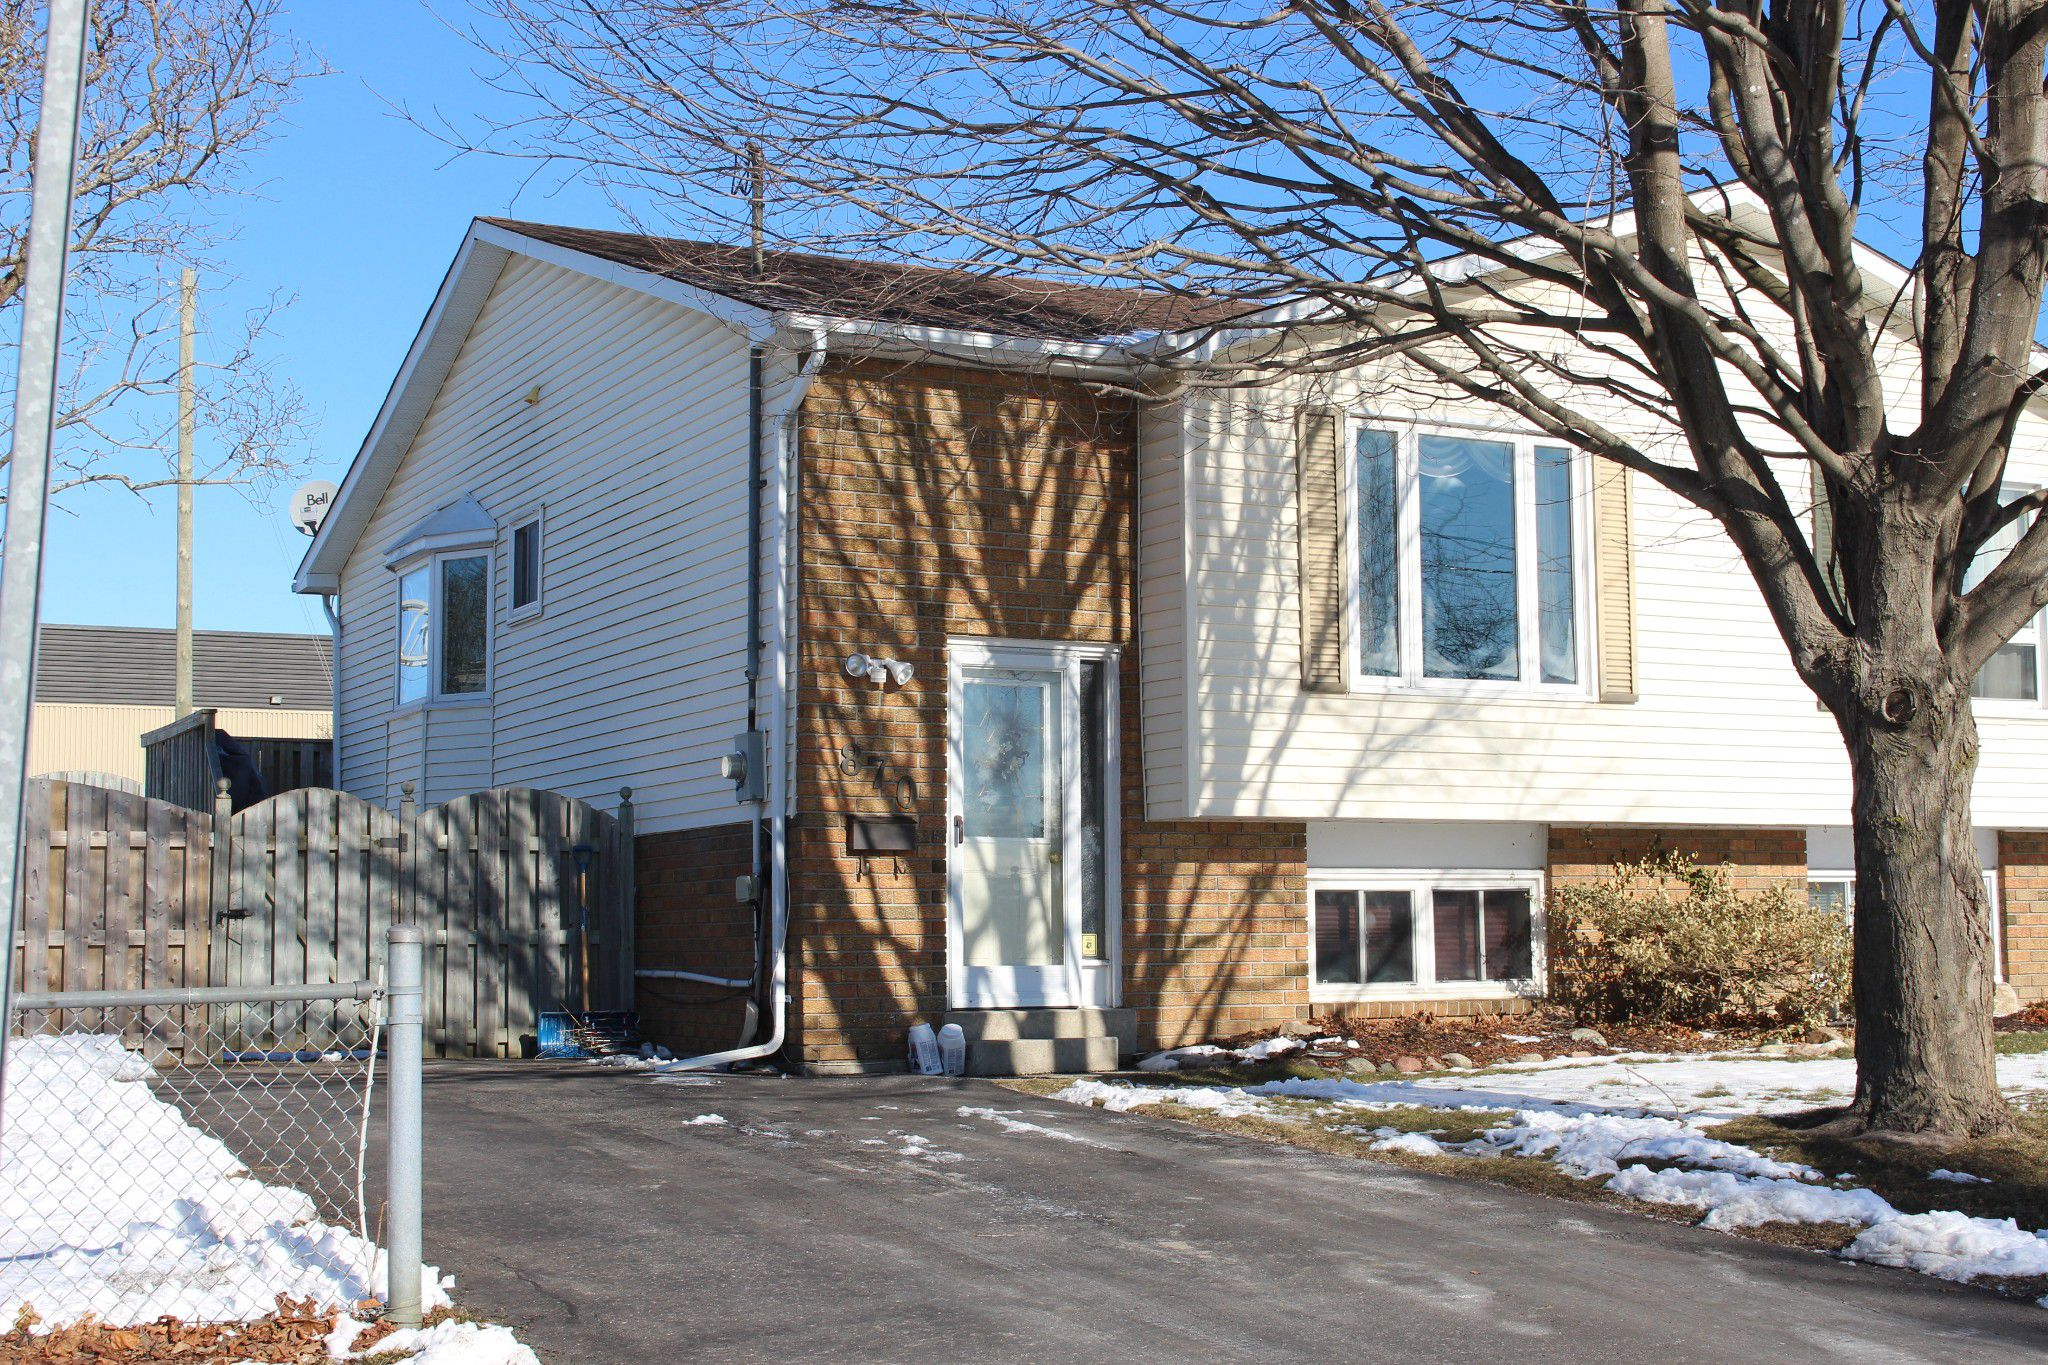 Main Photo: 870 Westwood Cres in Cobourg: Residential Attached for sale : MLS®# 510890072